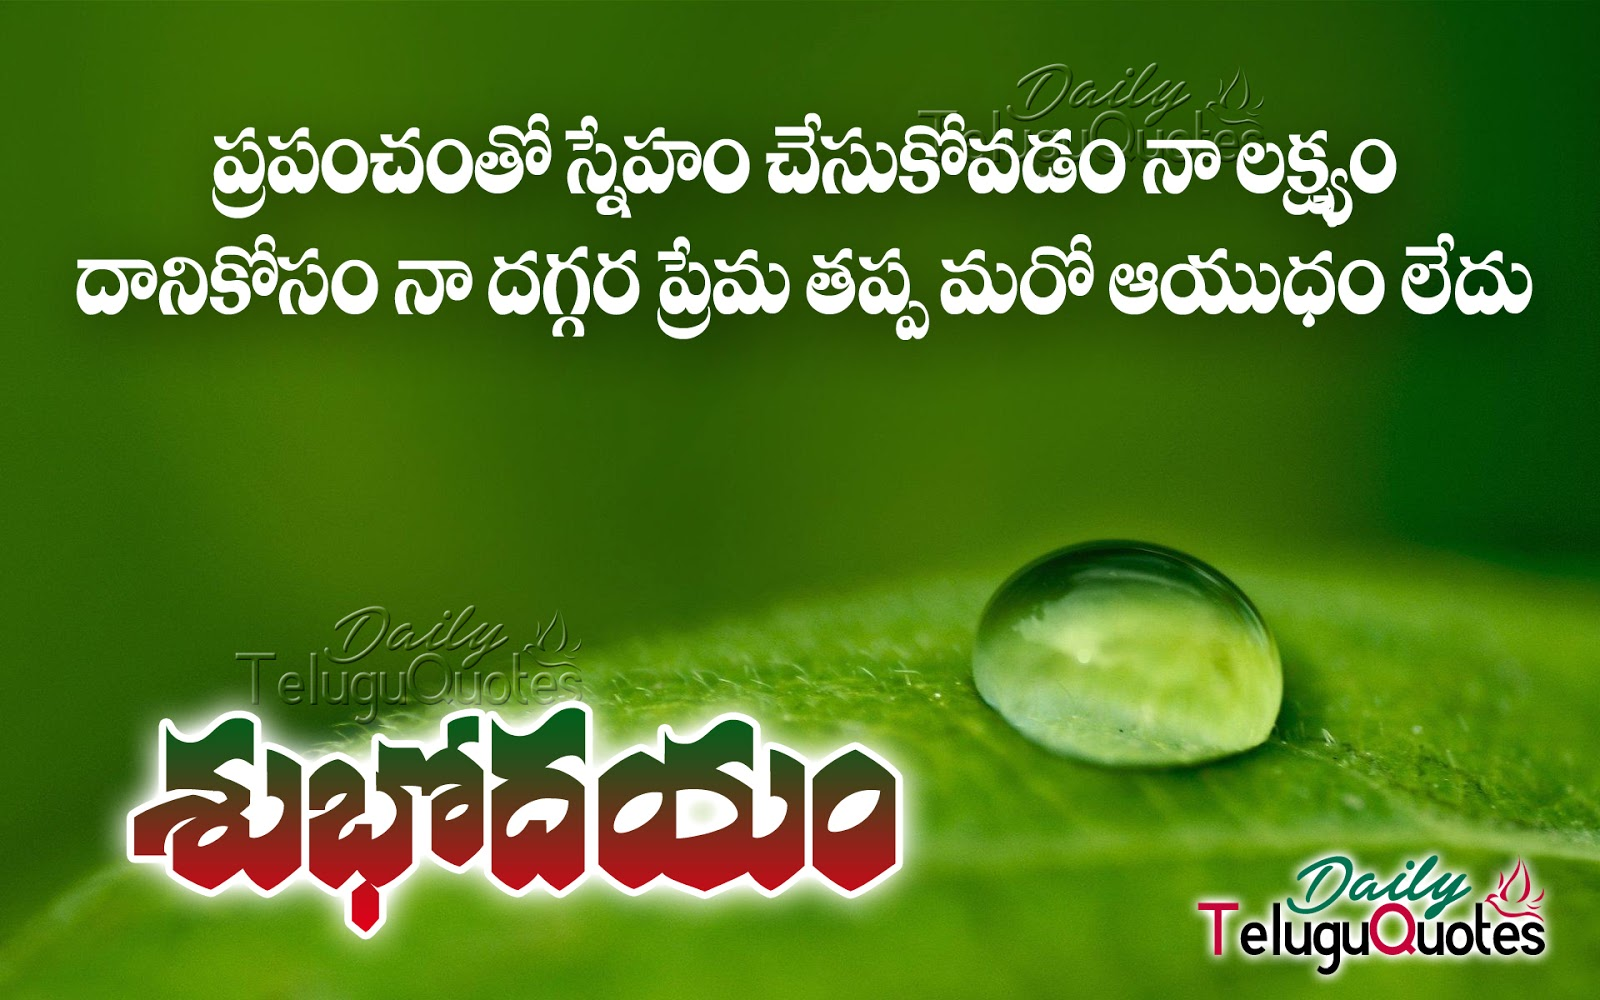 Good Morning Telugu Sms Beautiful Telugu Quotations